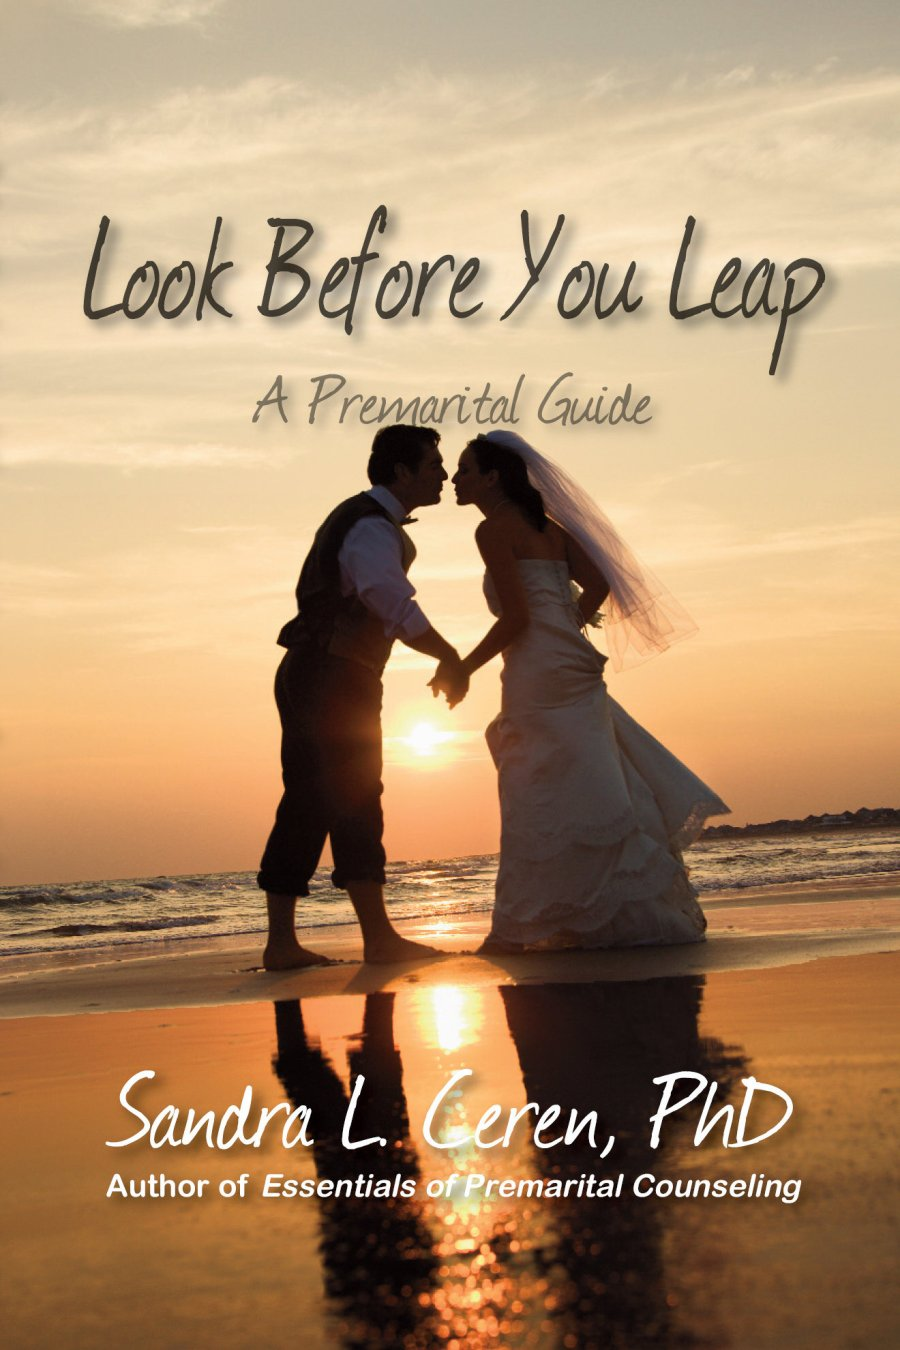 Look Before You Leap: A Premarital Guide for Couples 978-1-932690-75-0